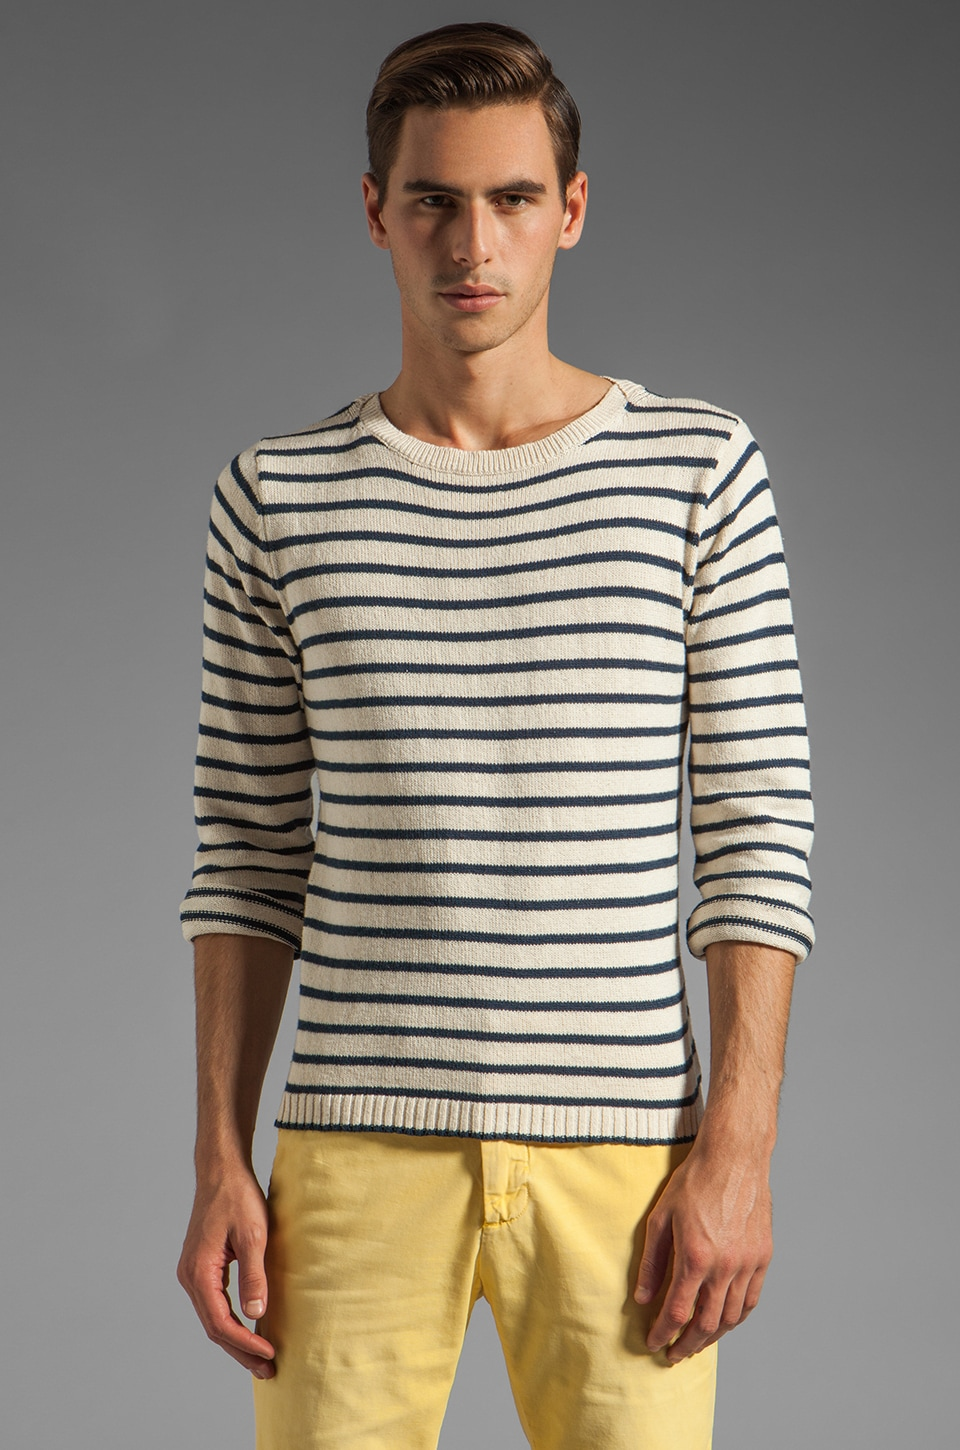 GANT Rugger Breton Split Crue Sweater in White